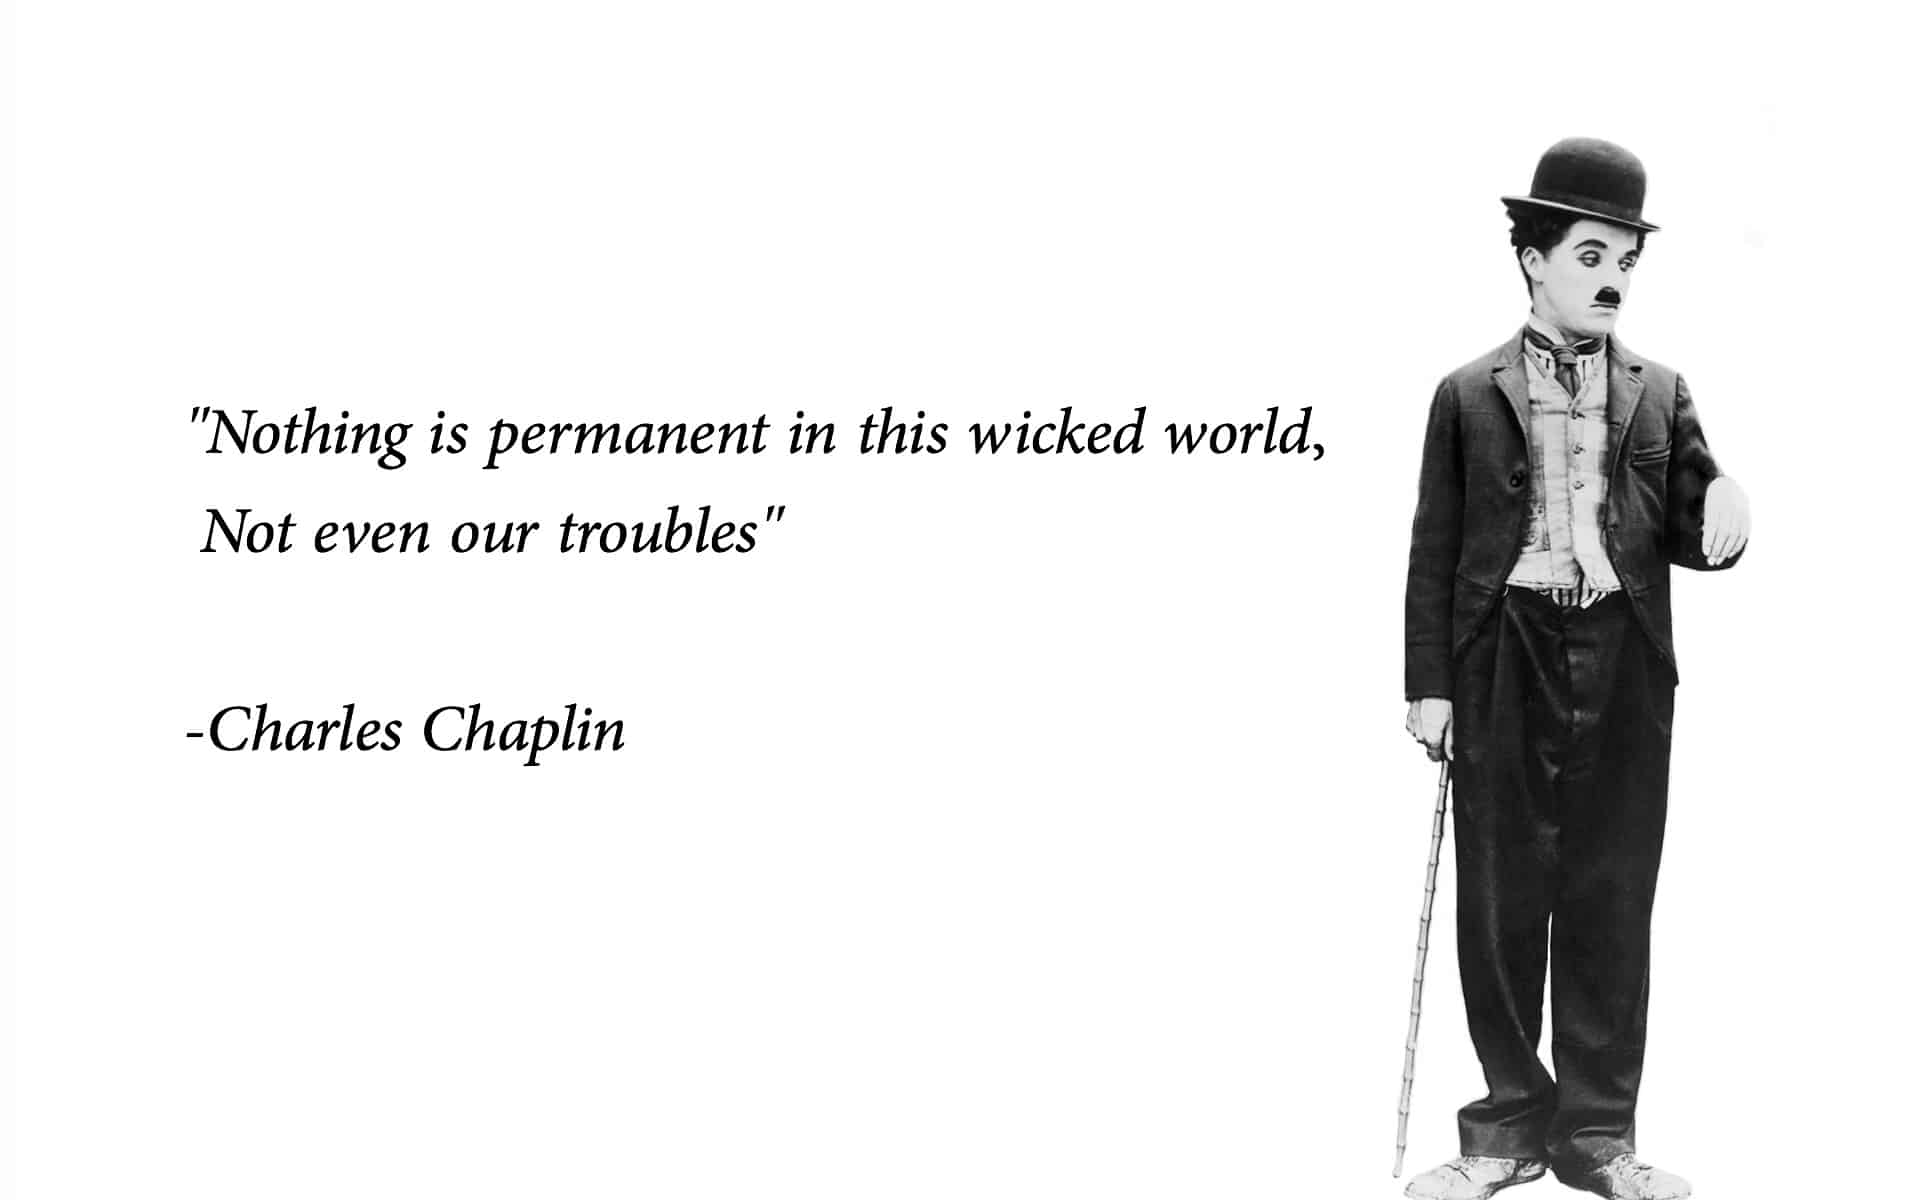 charlie chaplin wicked quote